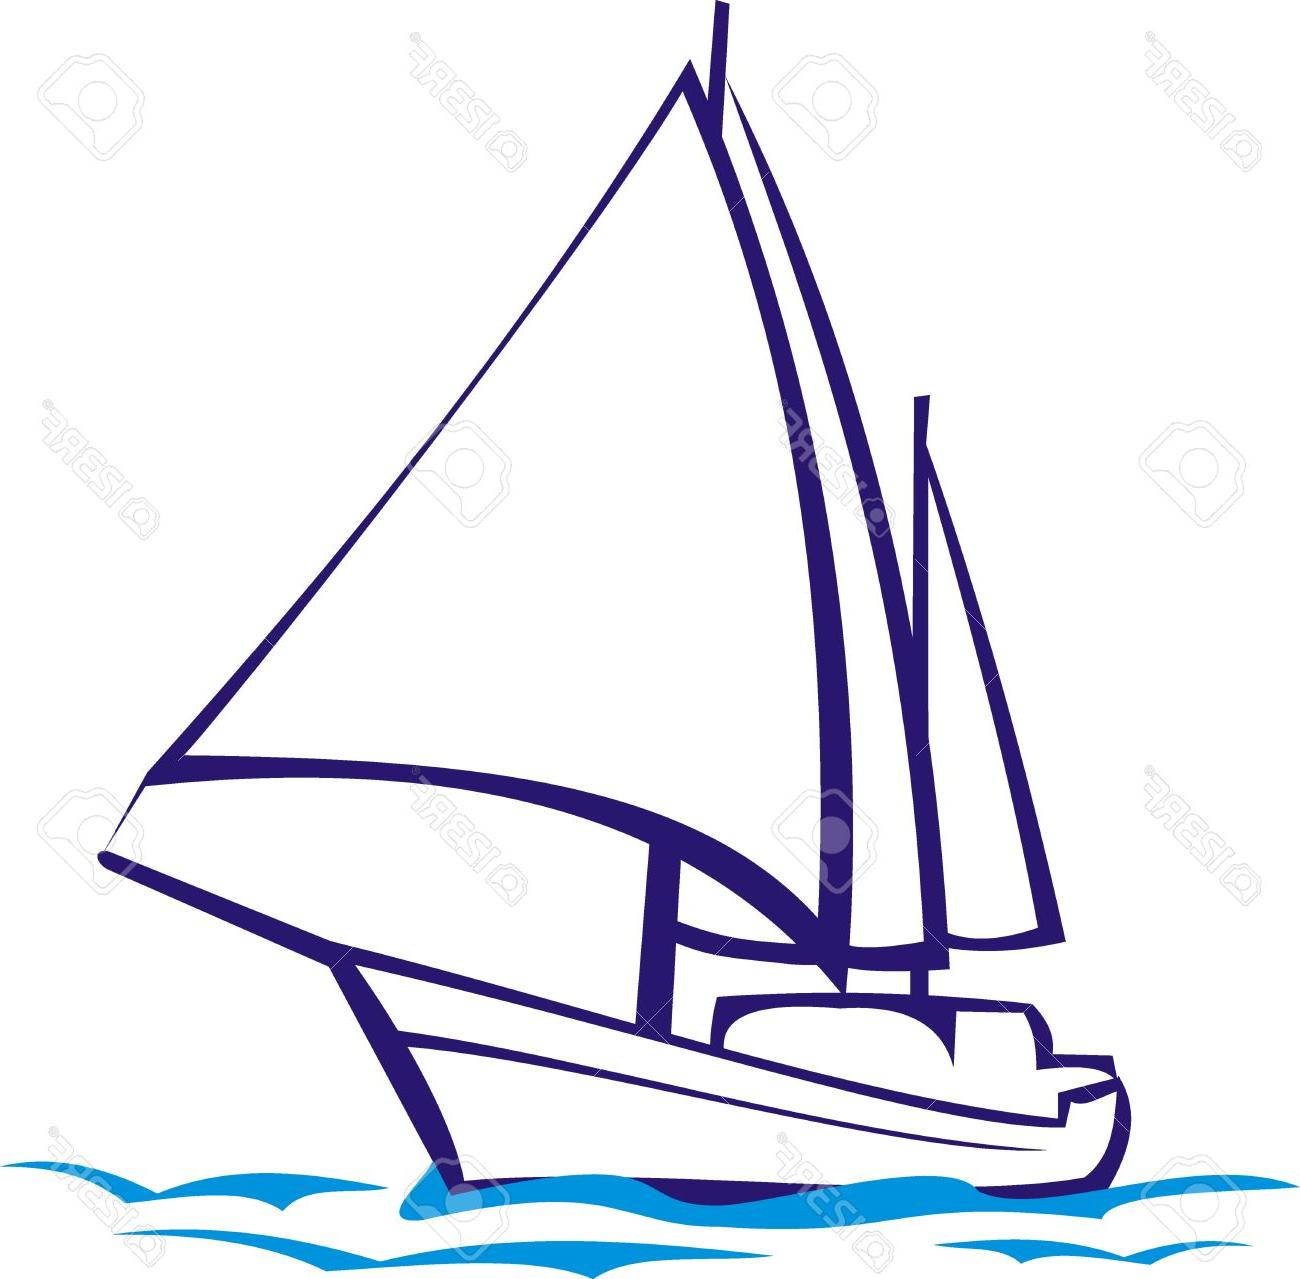 transparent library Sailboat free download best. Yacht clipart drawing